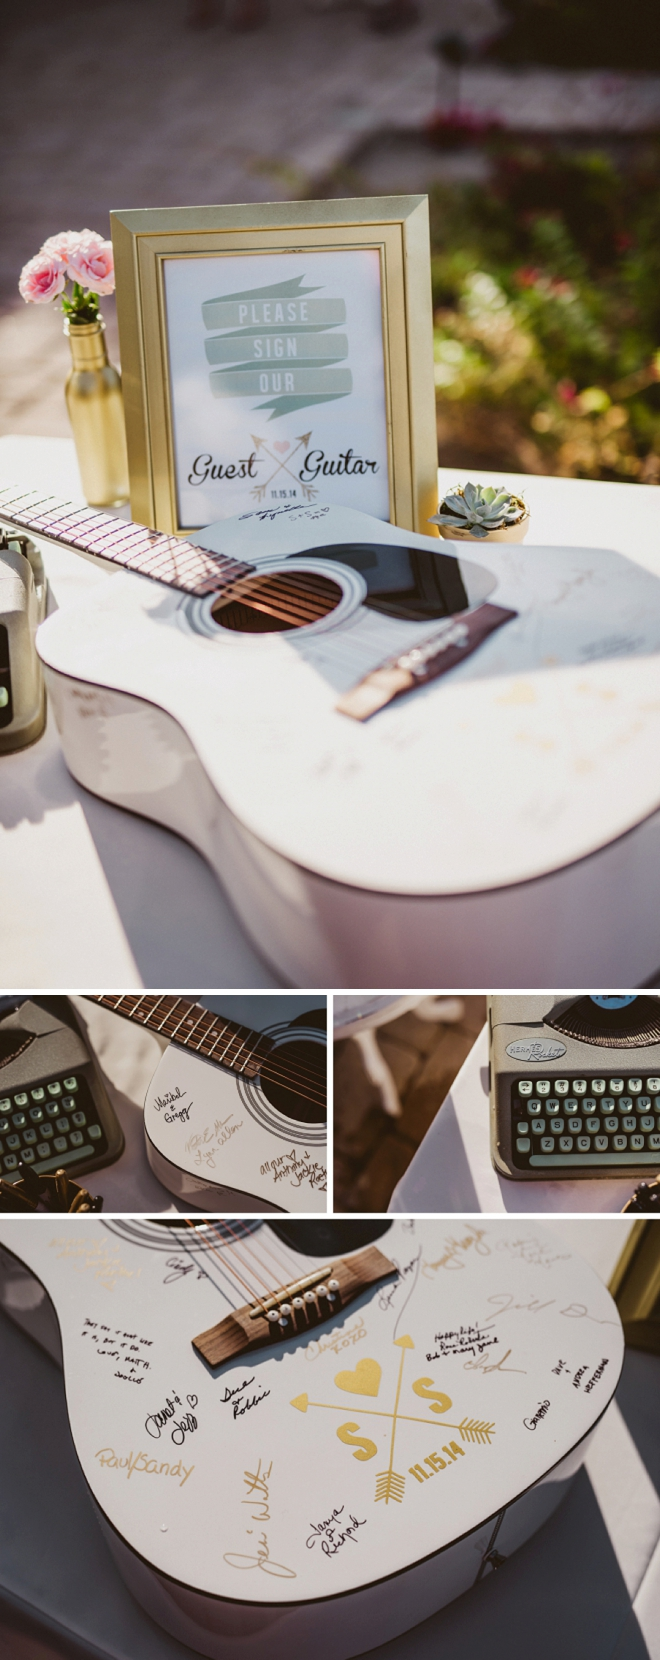 We love this fun couple's guitar guest book! Such a fun guest book idea!